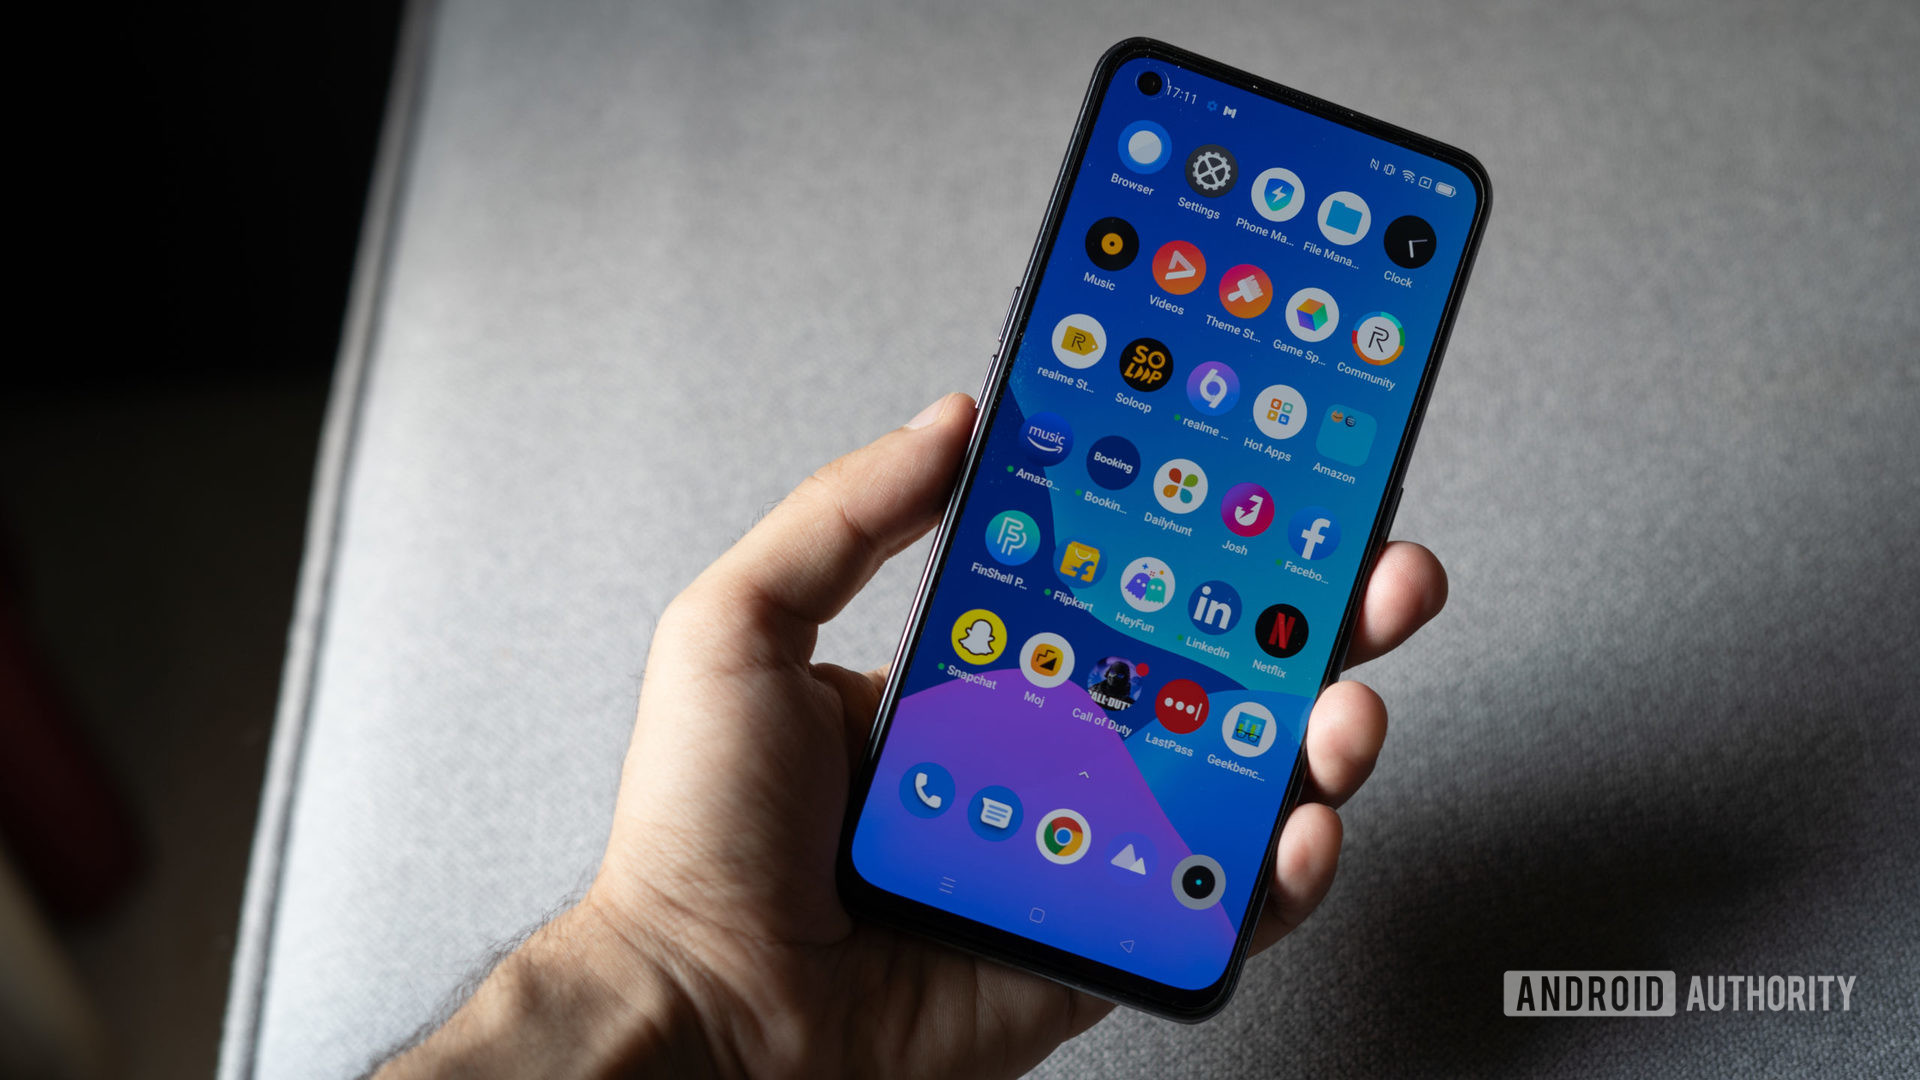 Realme GT review showing bloatware on screen.